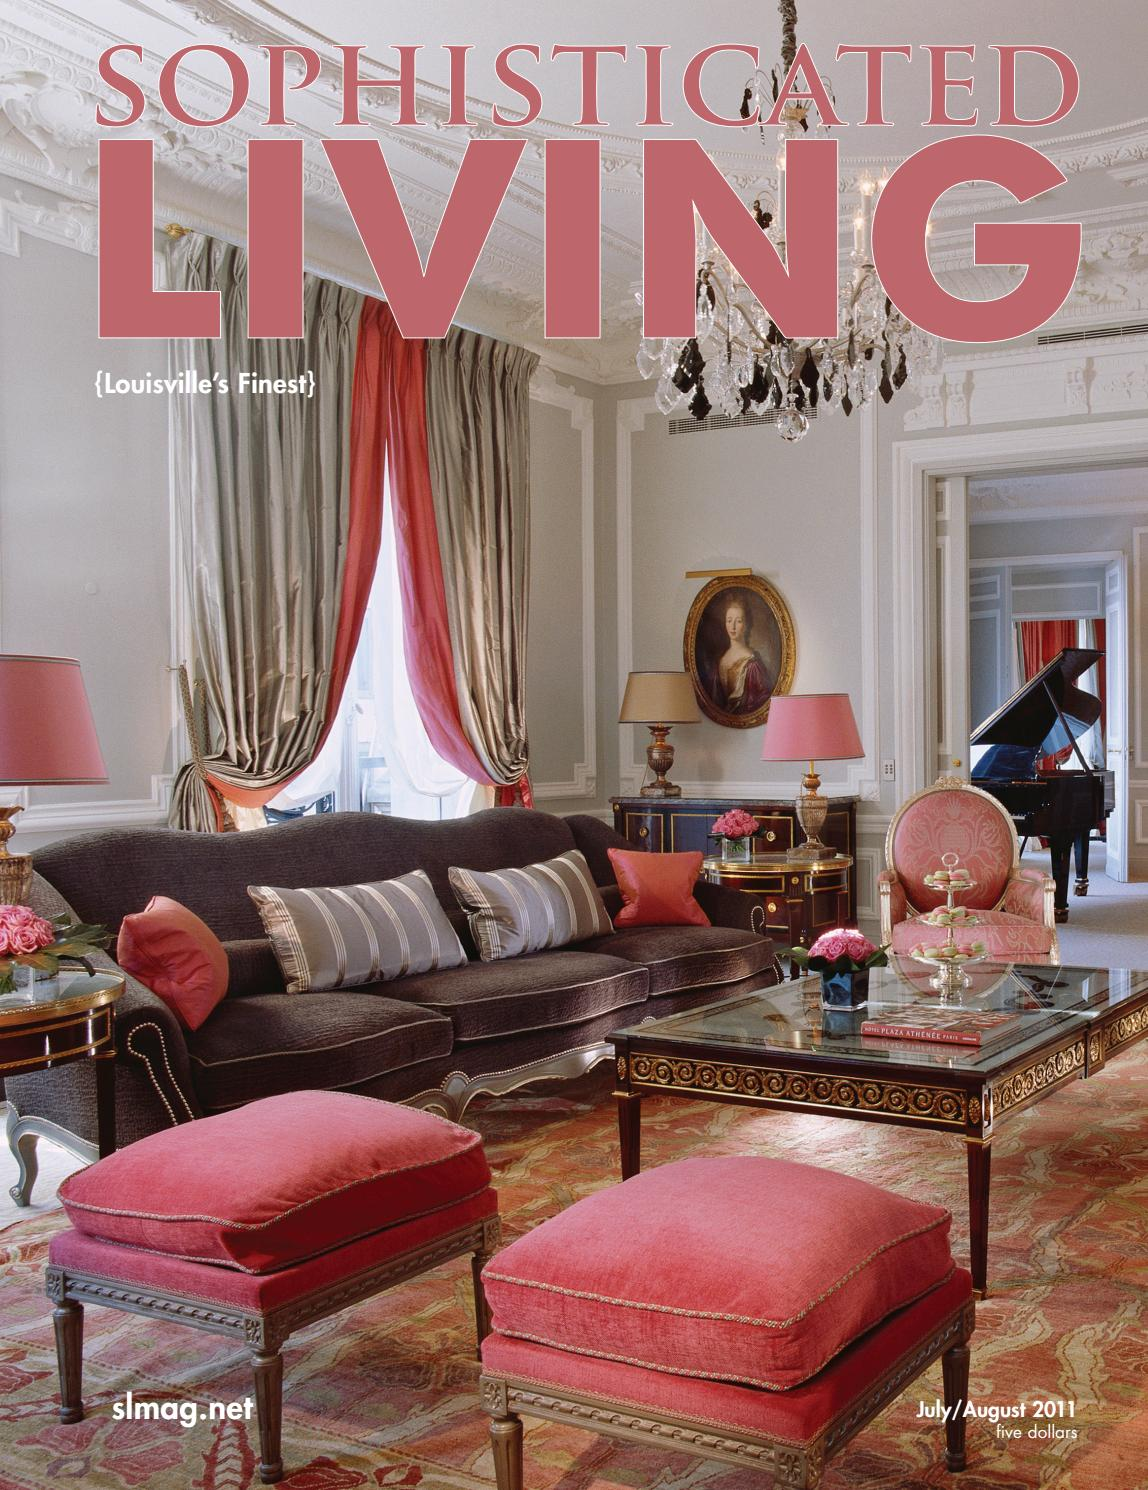 Plus Belle La Vie 3908 : belle, Sophisticated, Living, Louisville, July/August, Magazine, Issuu